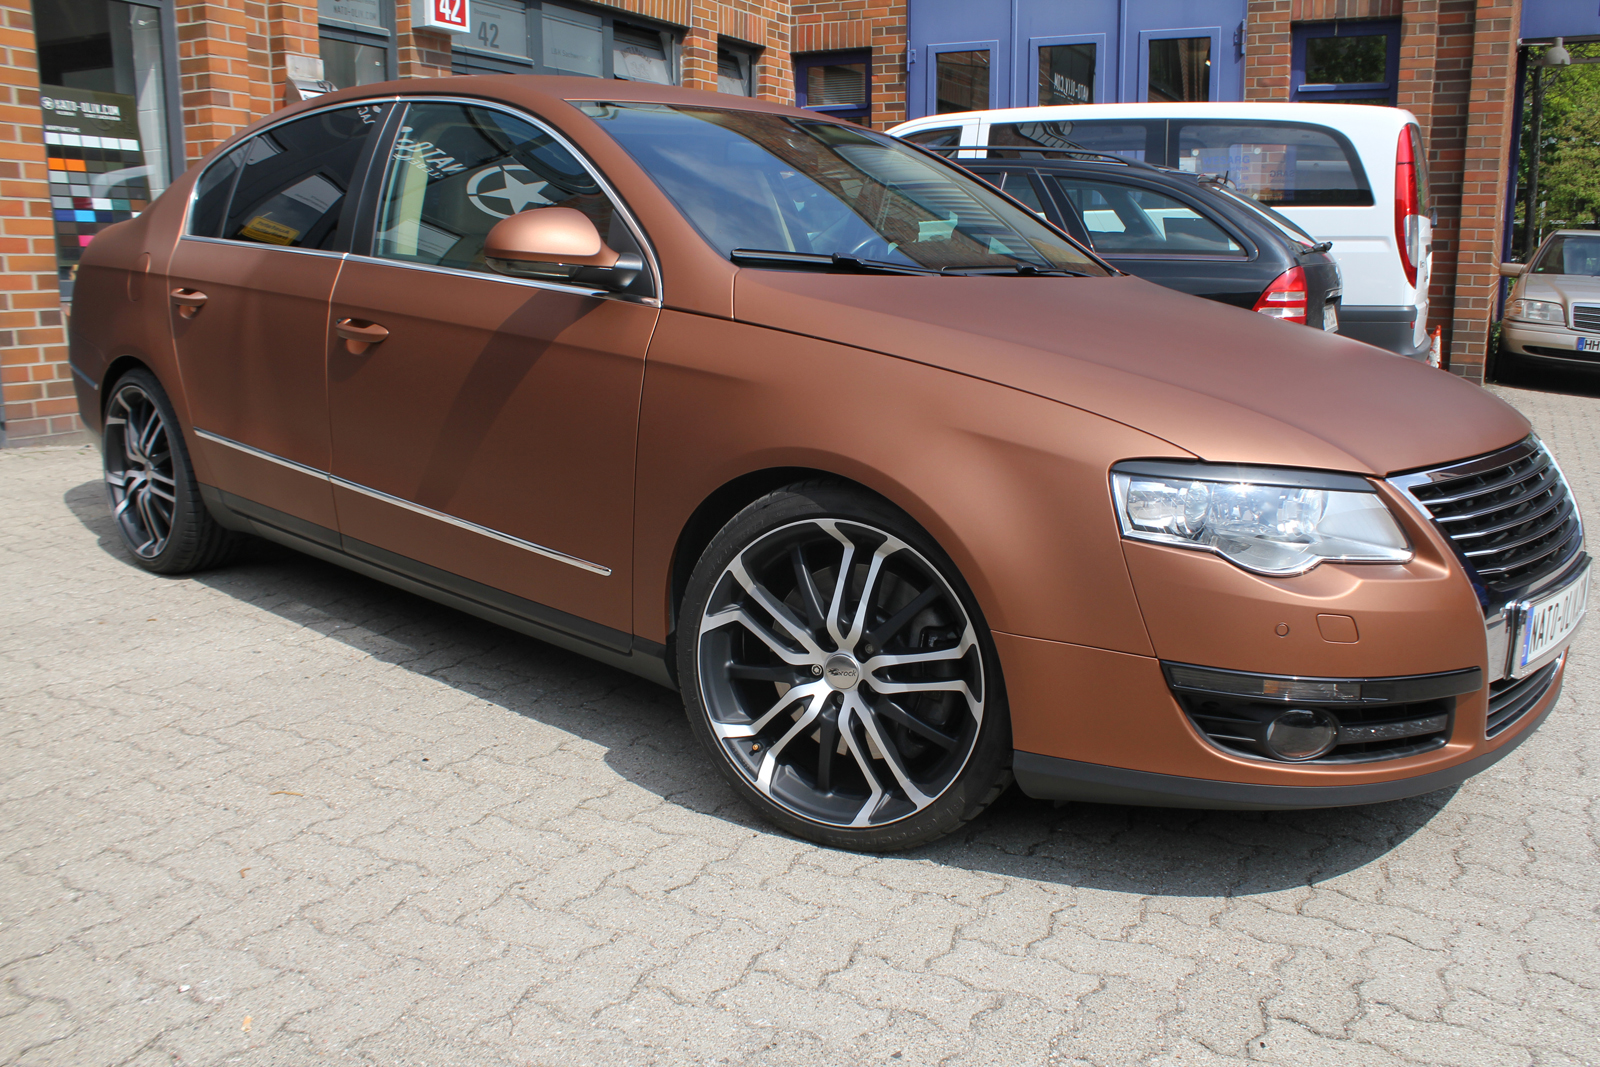 VW_Passat_Folierung_Bronze_matt_metallic_09